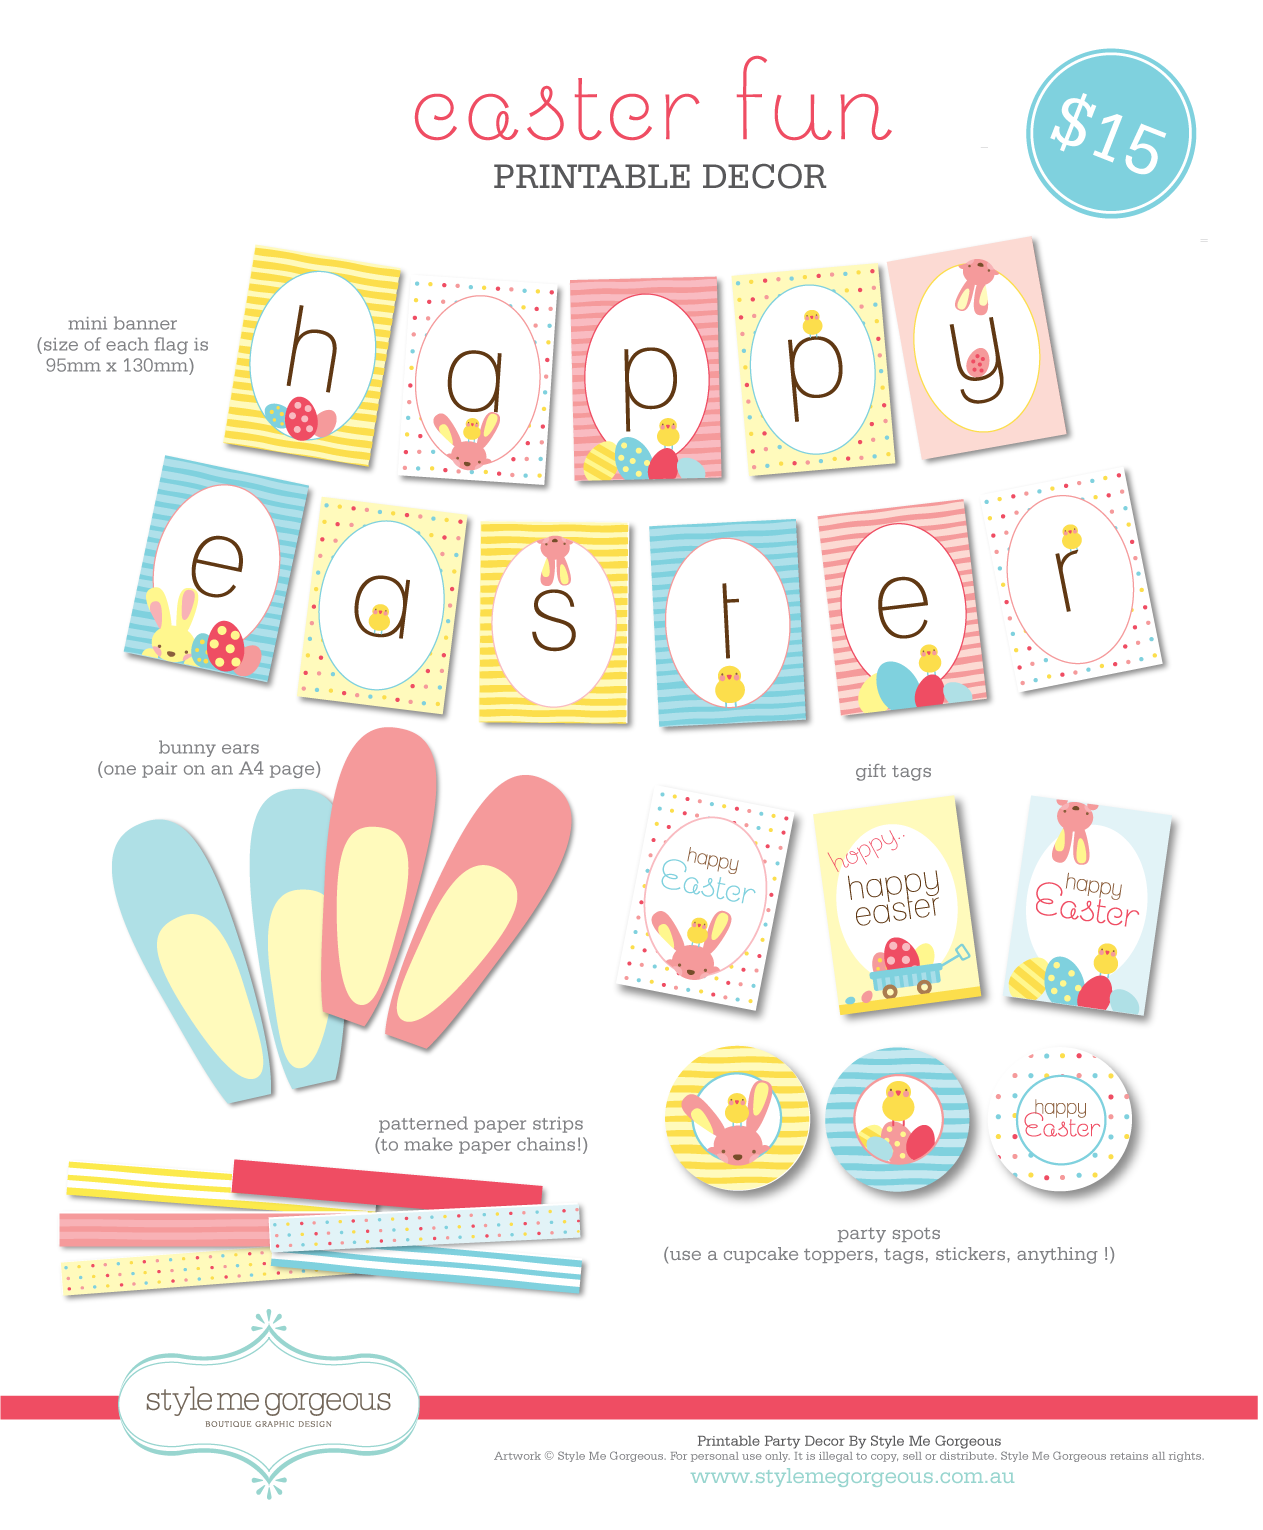 Style Me Gorgeous: {Printable Decor} Easter Fun